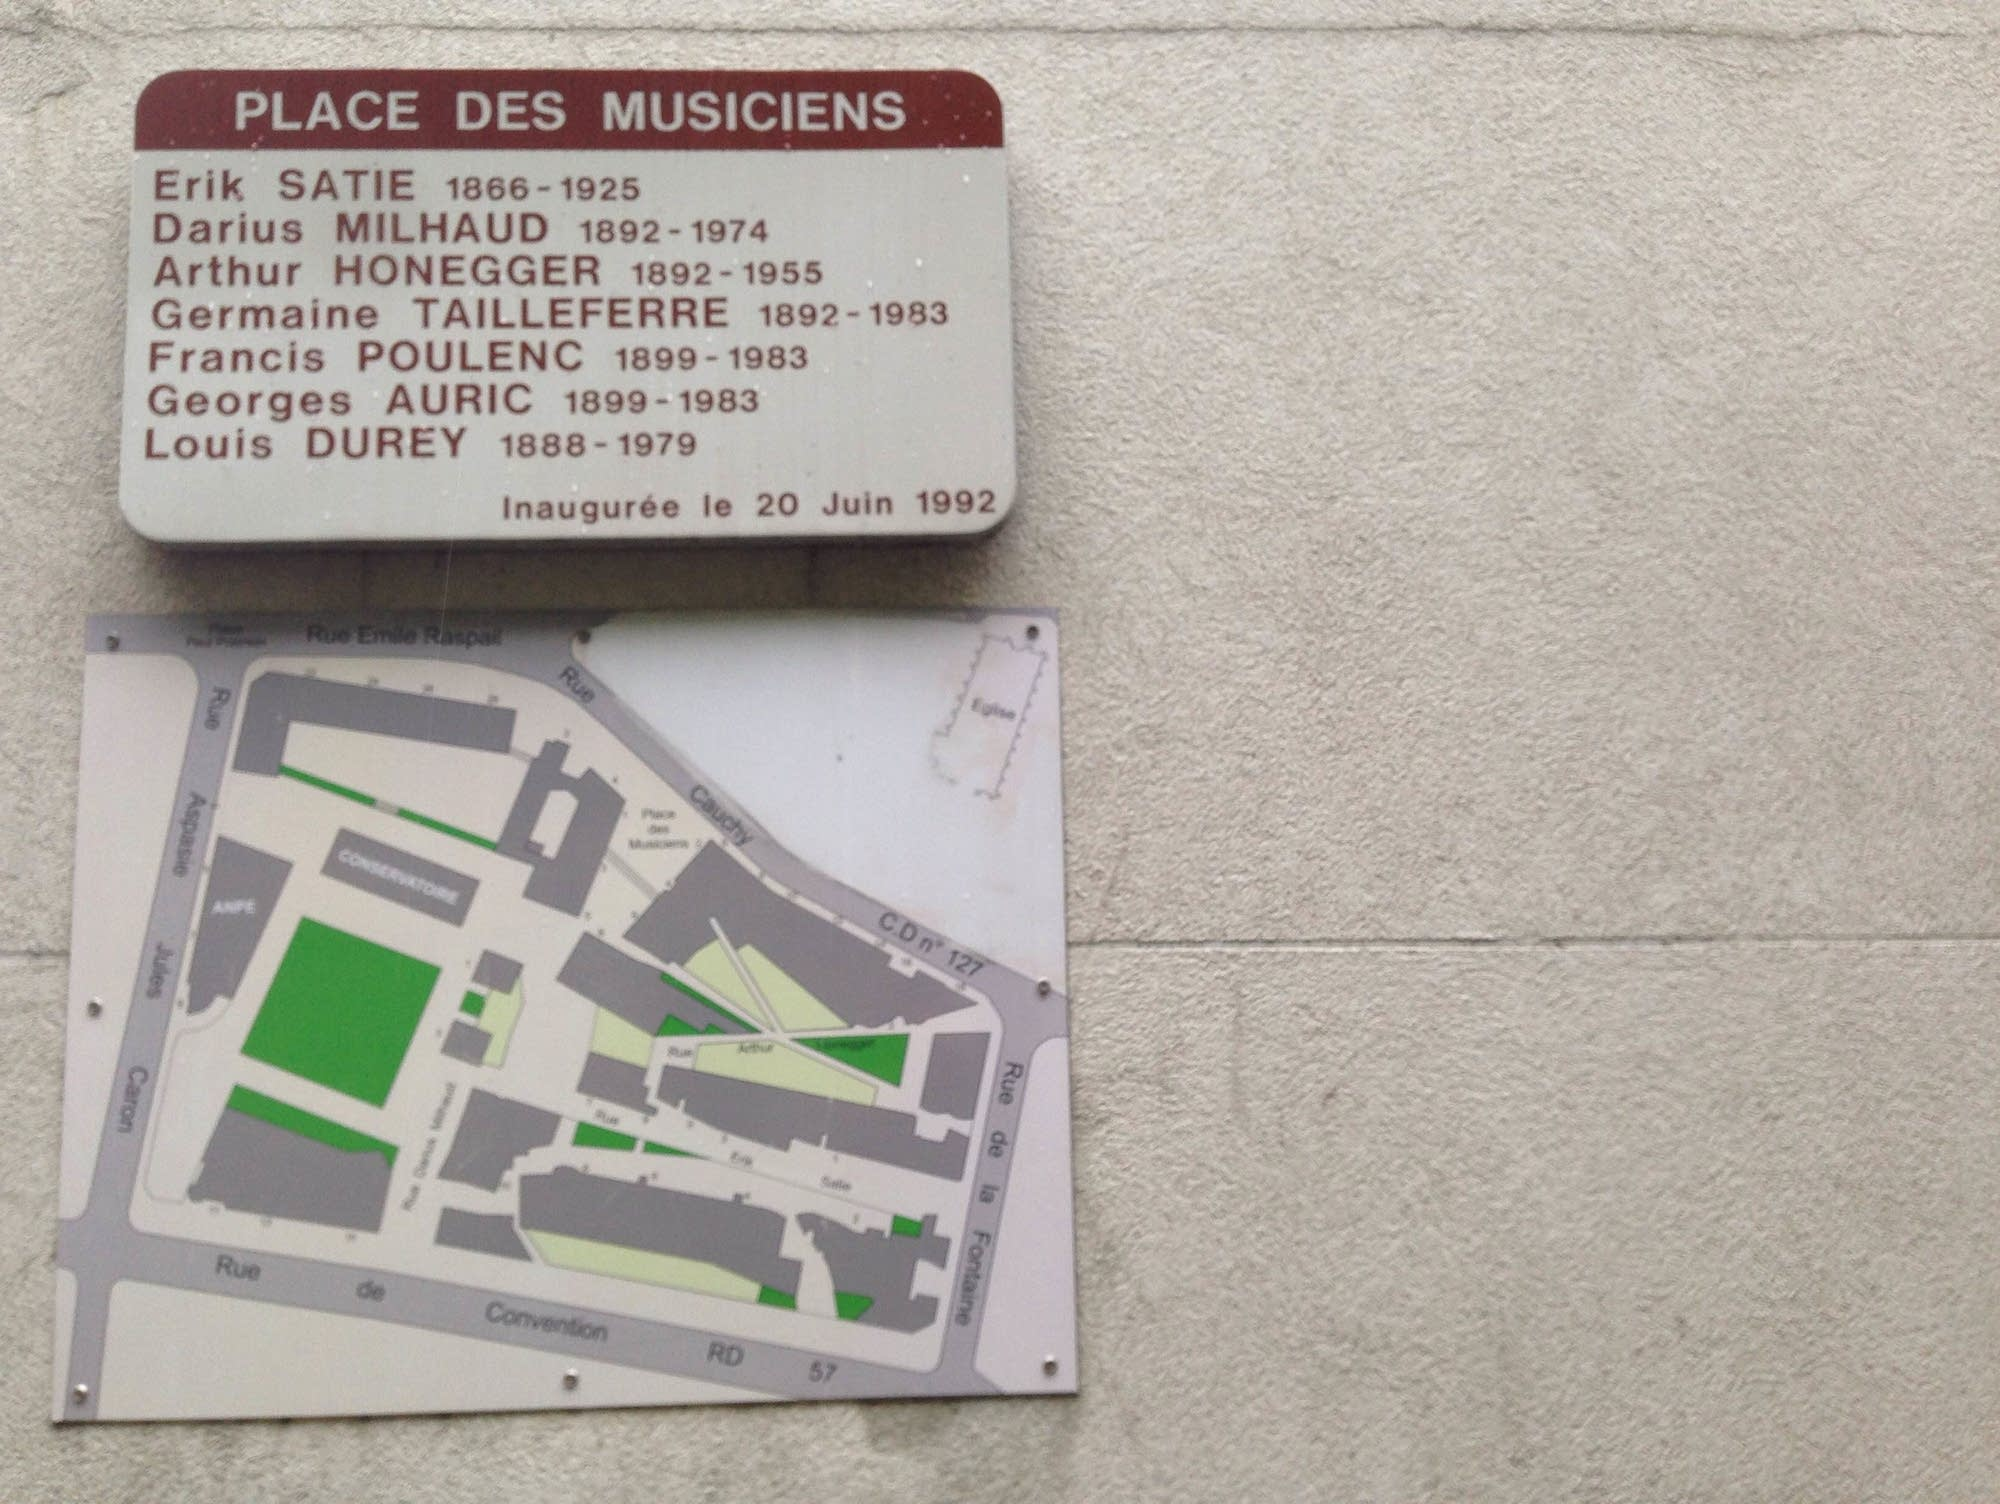 Place des Musiciens commemorates Les Six